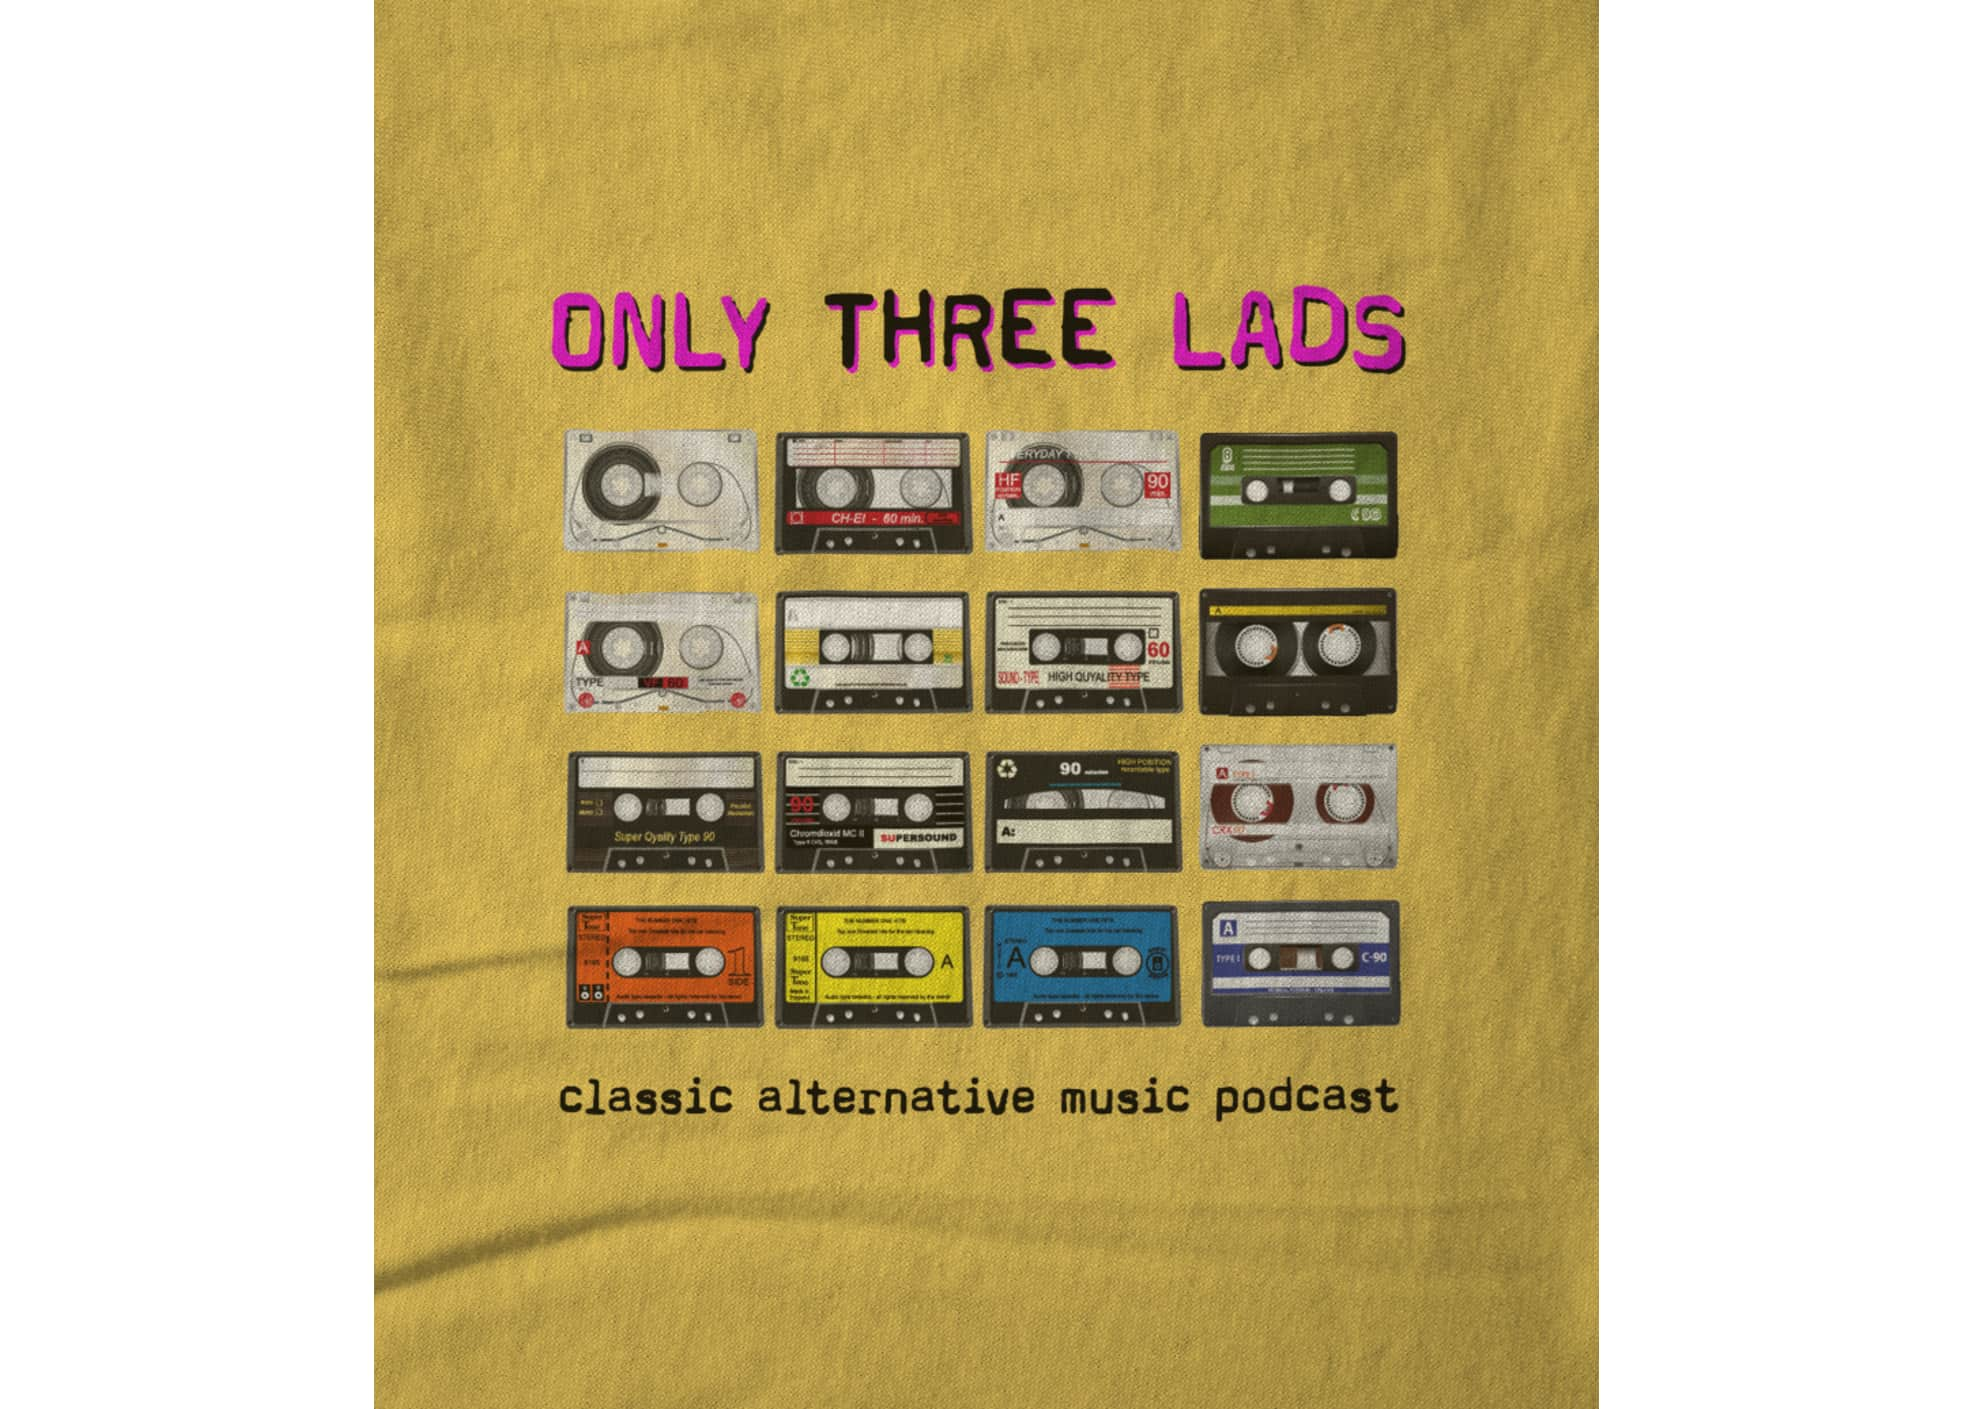 Only three lads o3l   tapes  yellow  1617063067